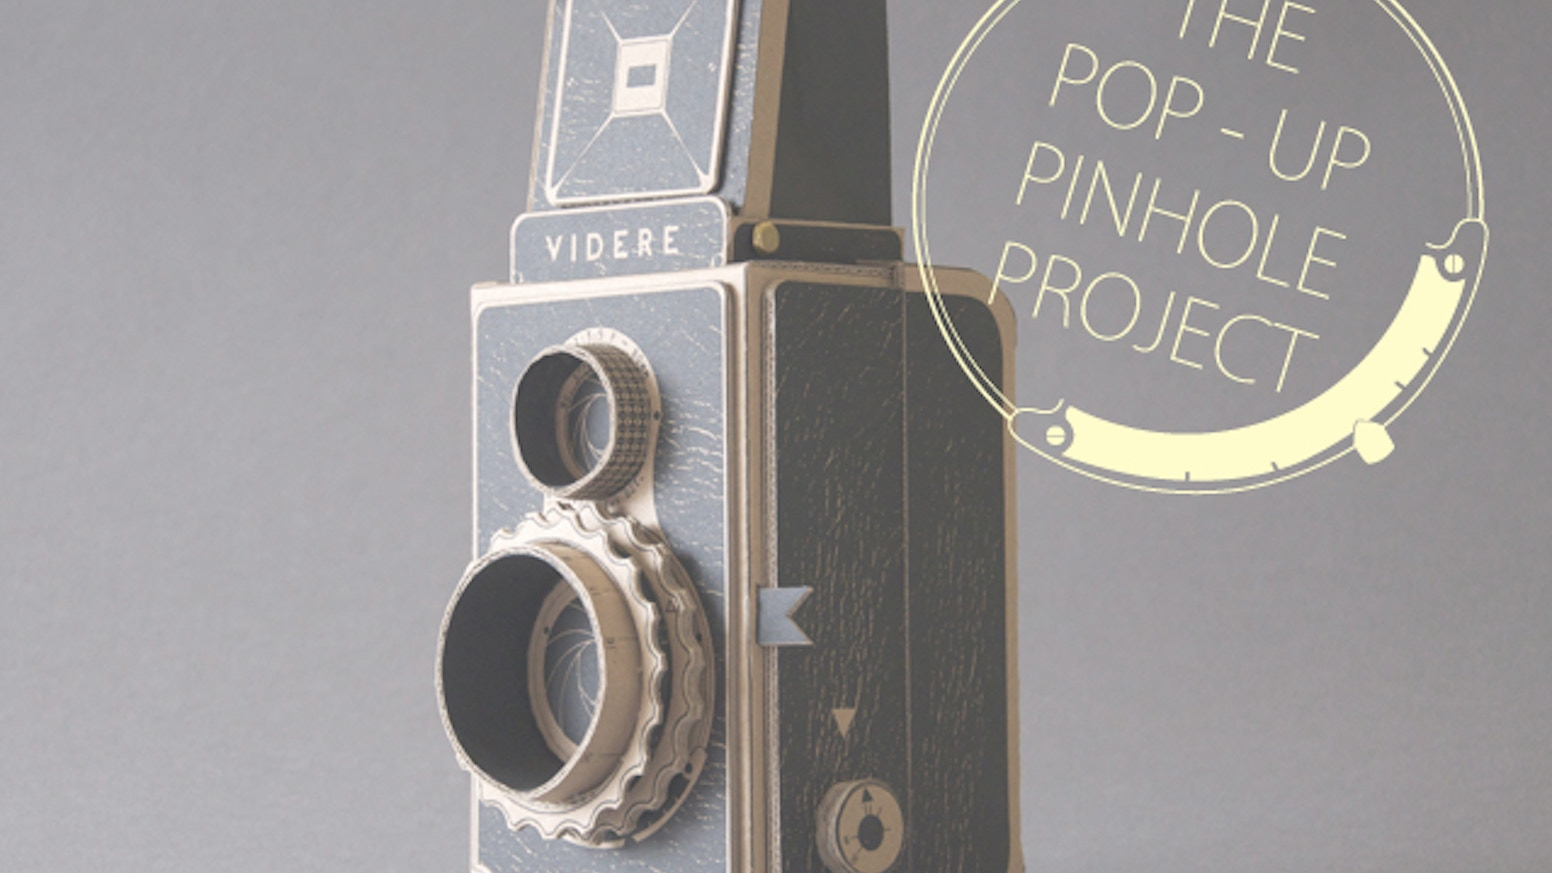 Make your own medium format camera and learn about pinhole photography in style!